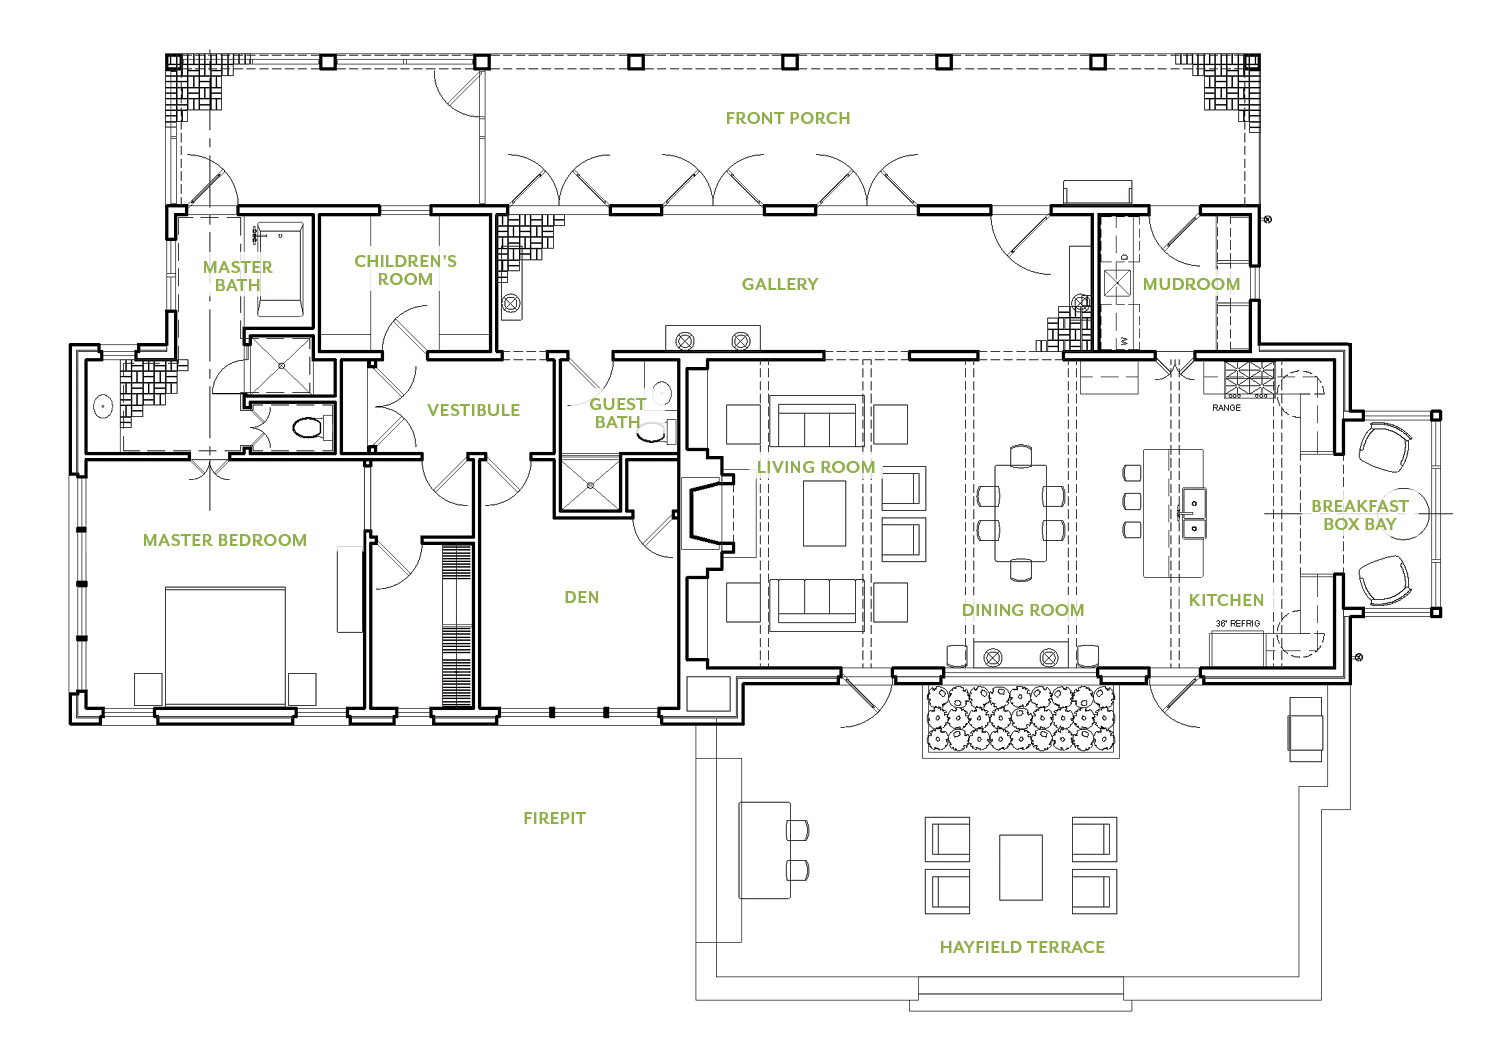 Floor plan for the 2021 Flower magazine's showhouse at Brierfield Farm n Bibb County, AL